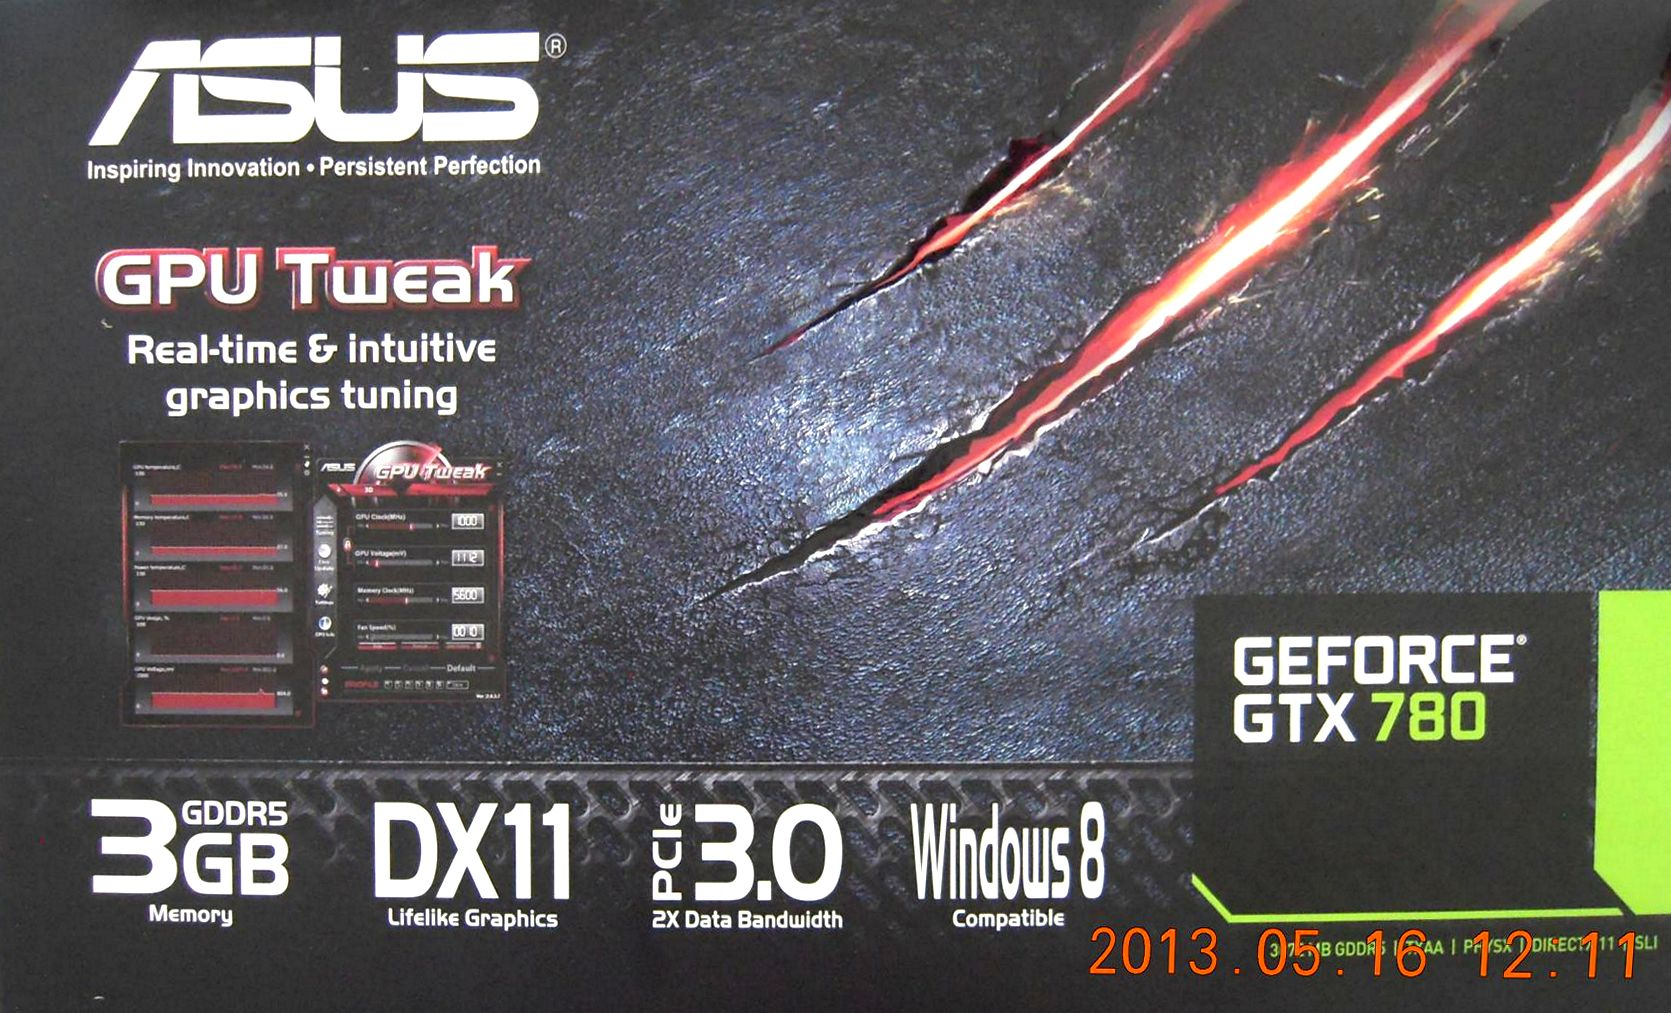 ASUS-GeForce-GTX-780.jpg